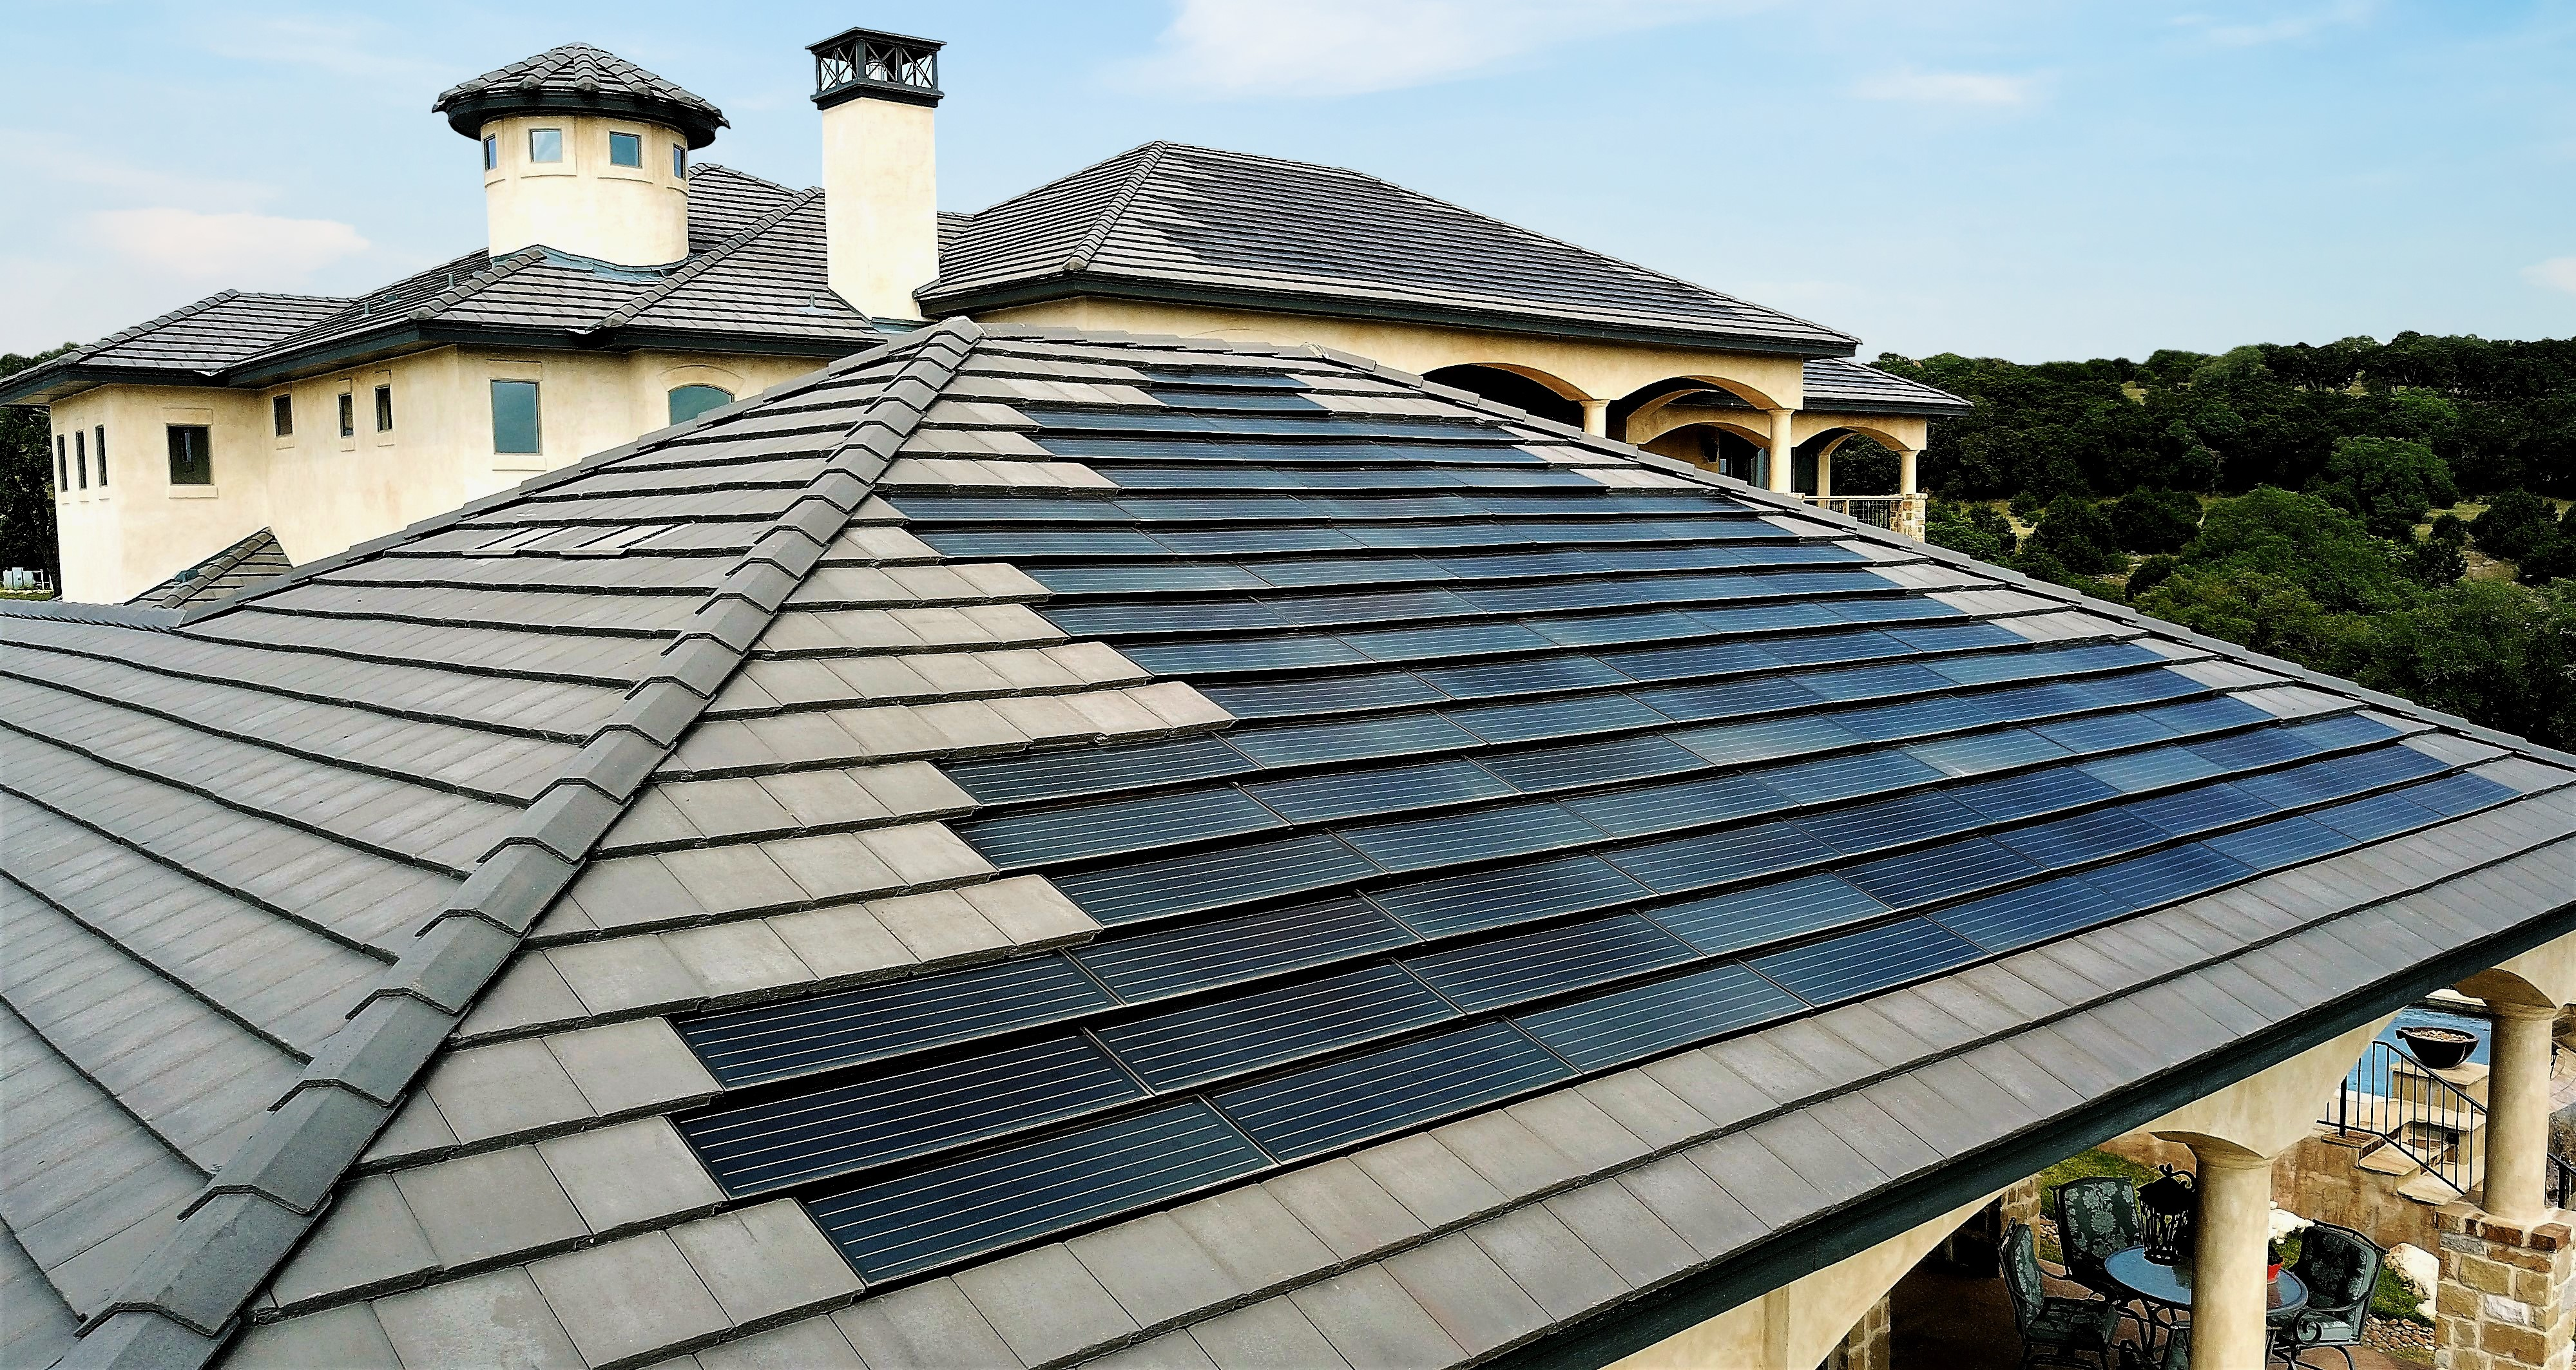 Apollo Tile Ii Solar Roofing System From Certainteed